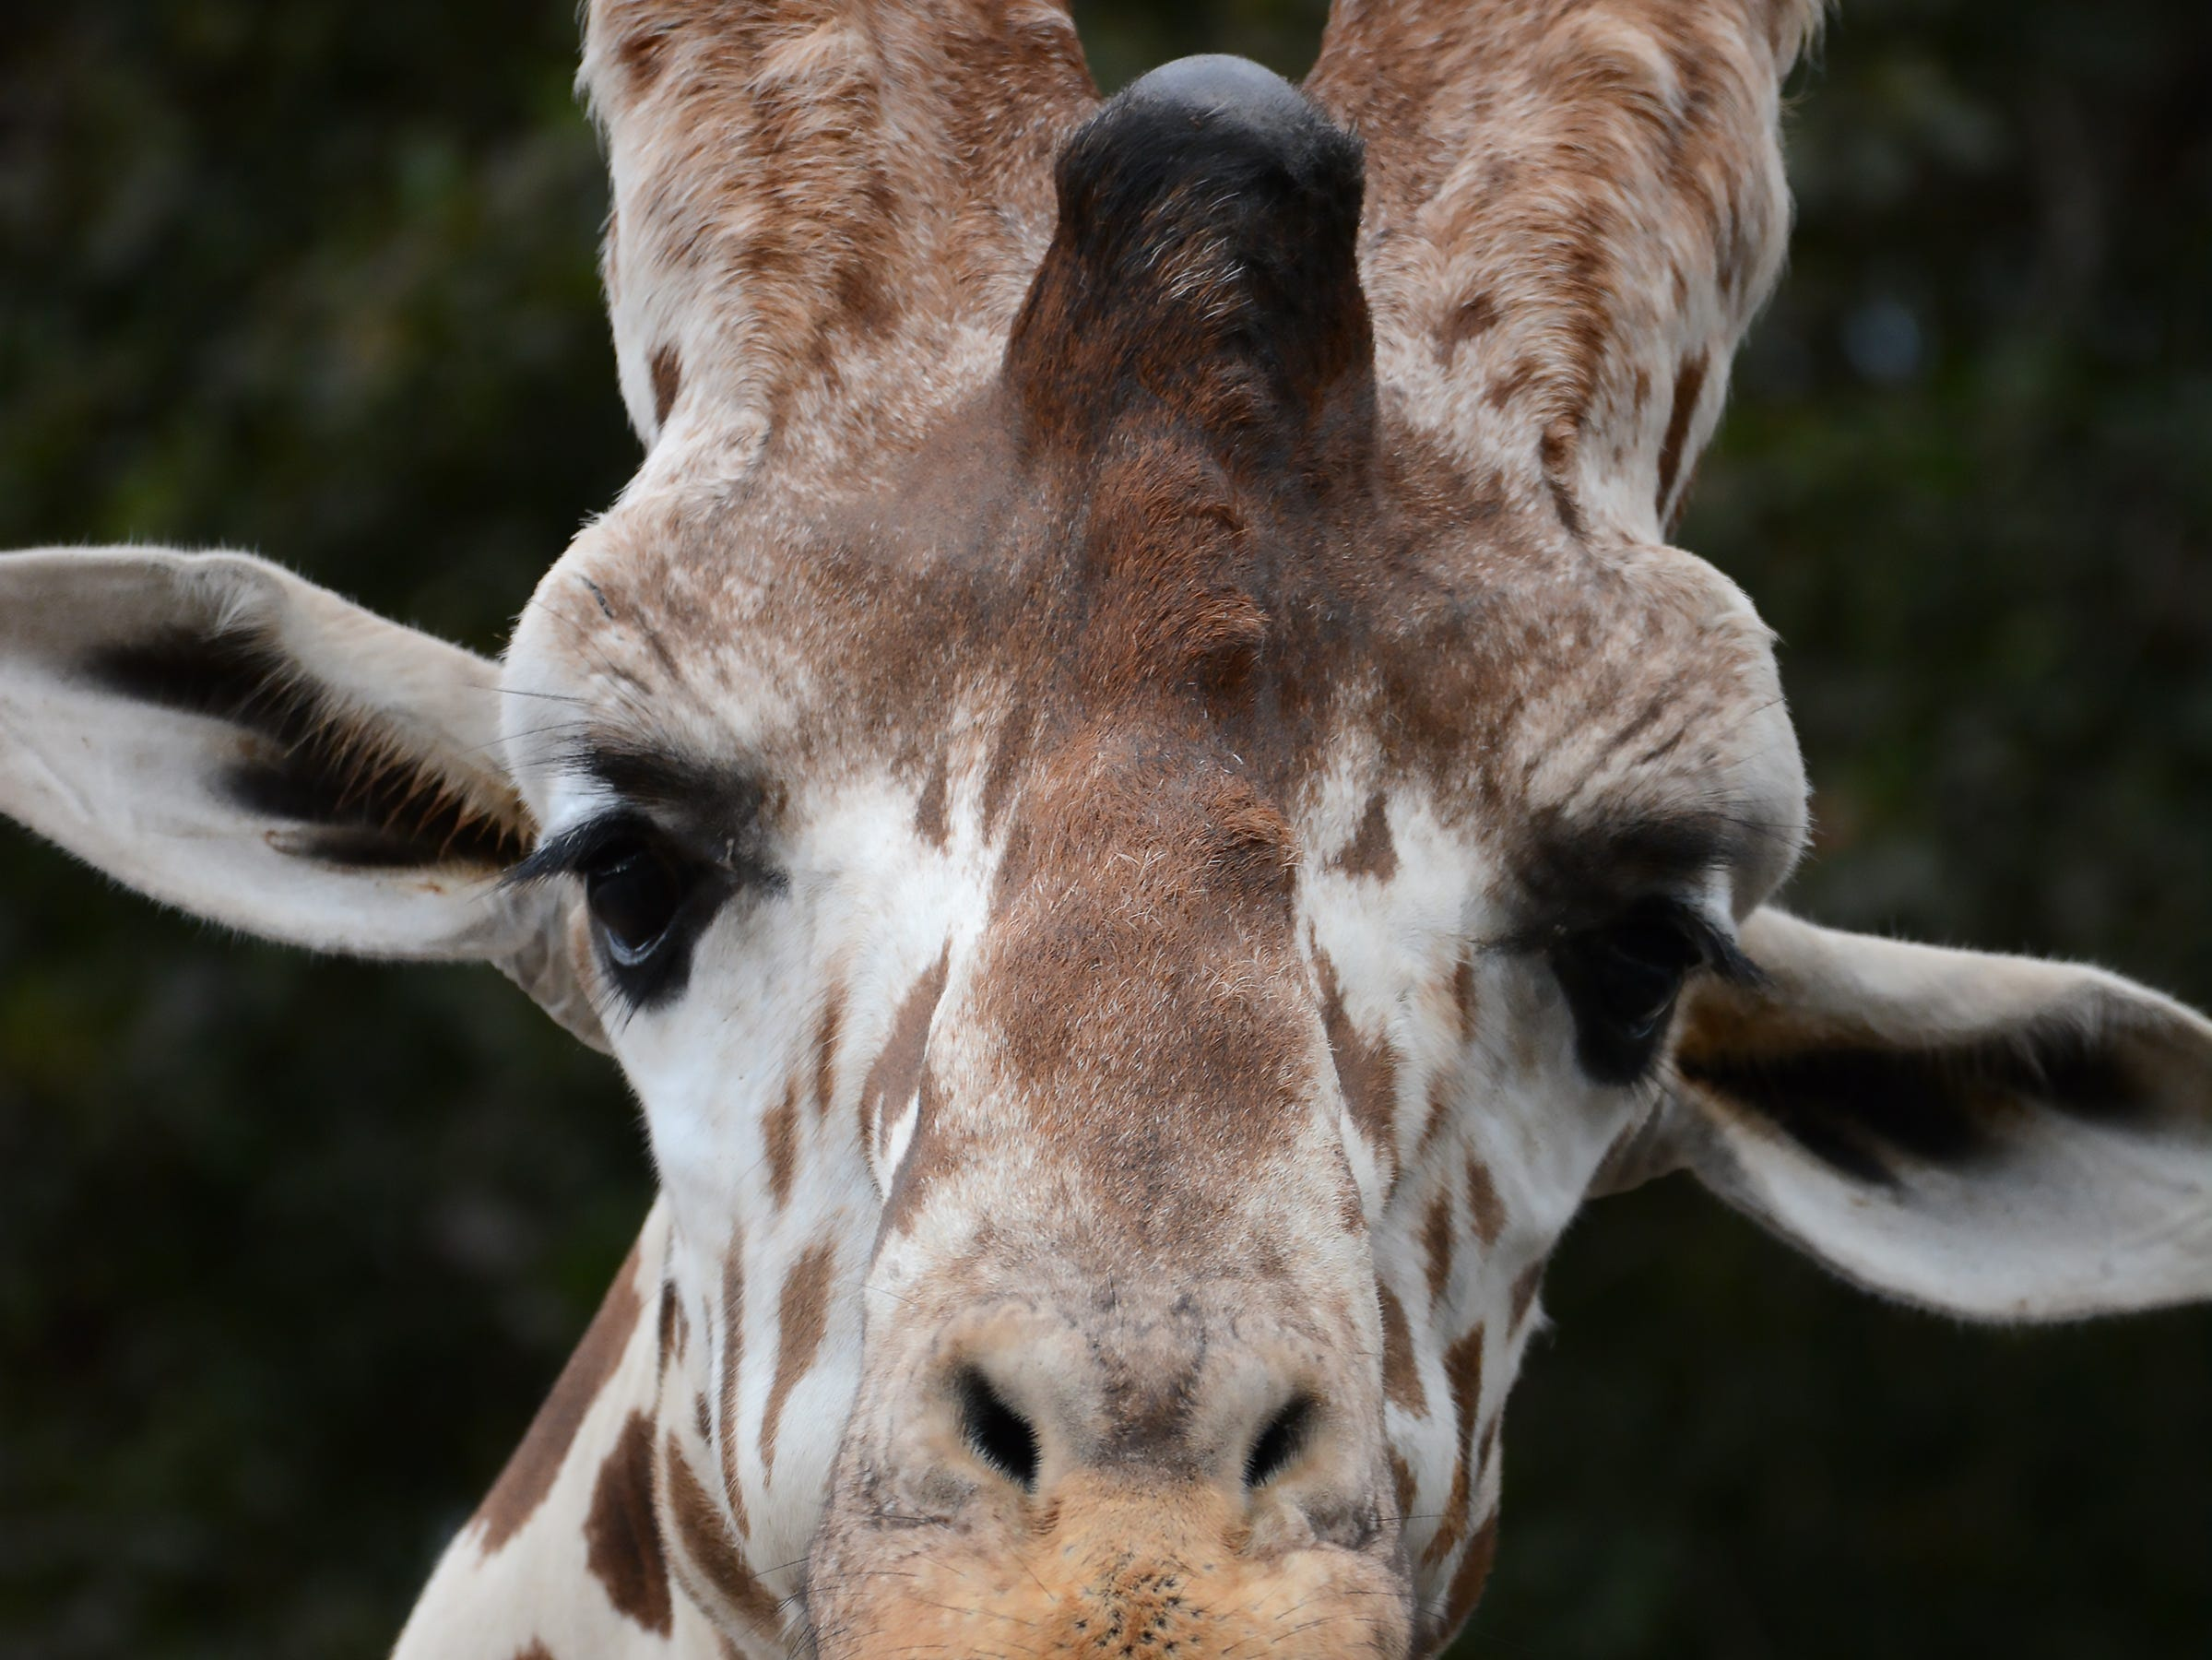 At 17 feet, reticulated giraffe Jumanji is the tallest creature at the Naples Zoo.